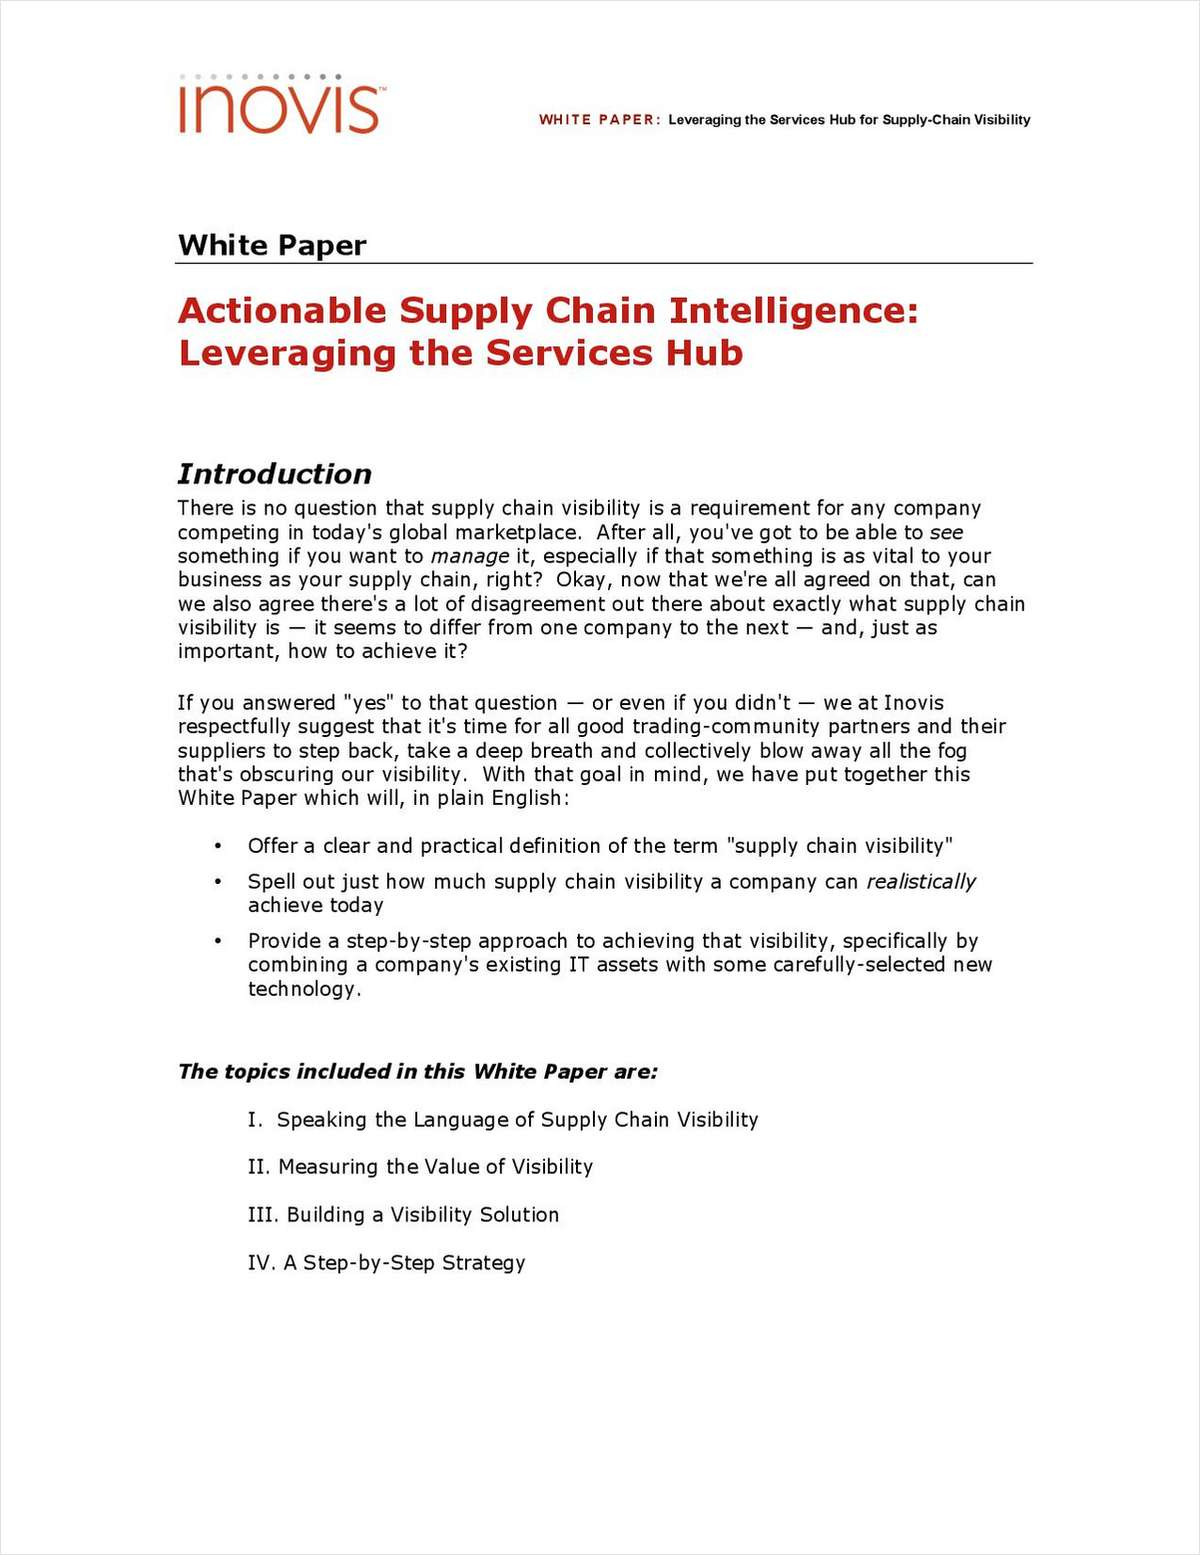 Actionable Supply Chain Intelligence: Leveraging the Services Hub